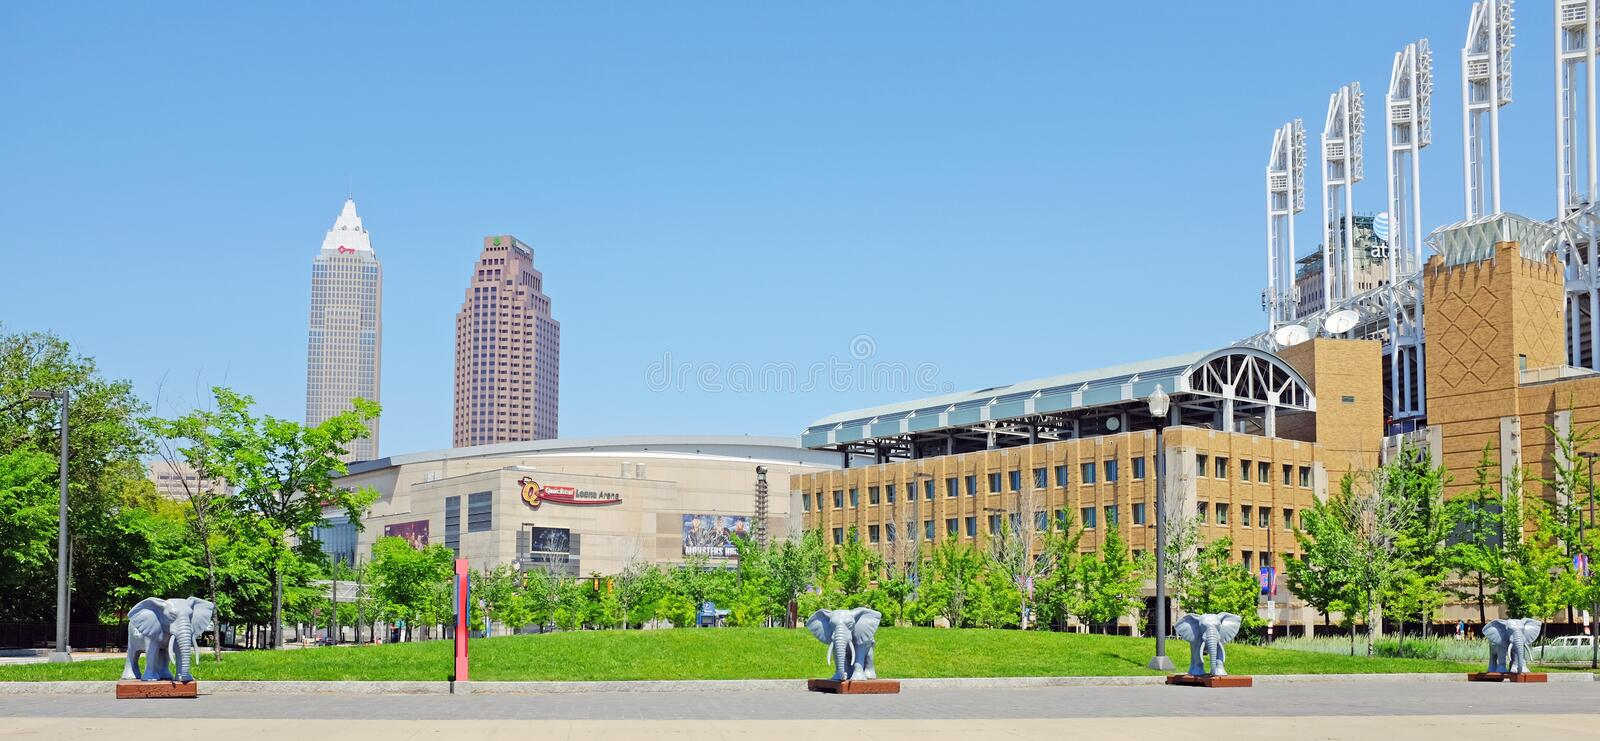 Downtown Cleveland greenspace near the sports venues Q Arena and Progressive Field. Cleveland, Ohio, USA is known as a sports town.  Two of the primary sports stock images